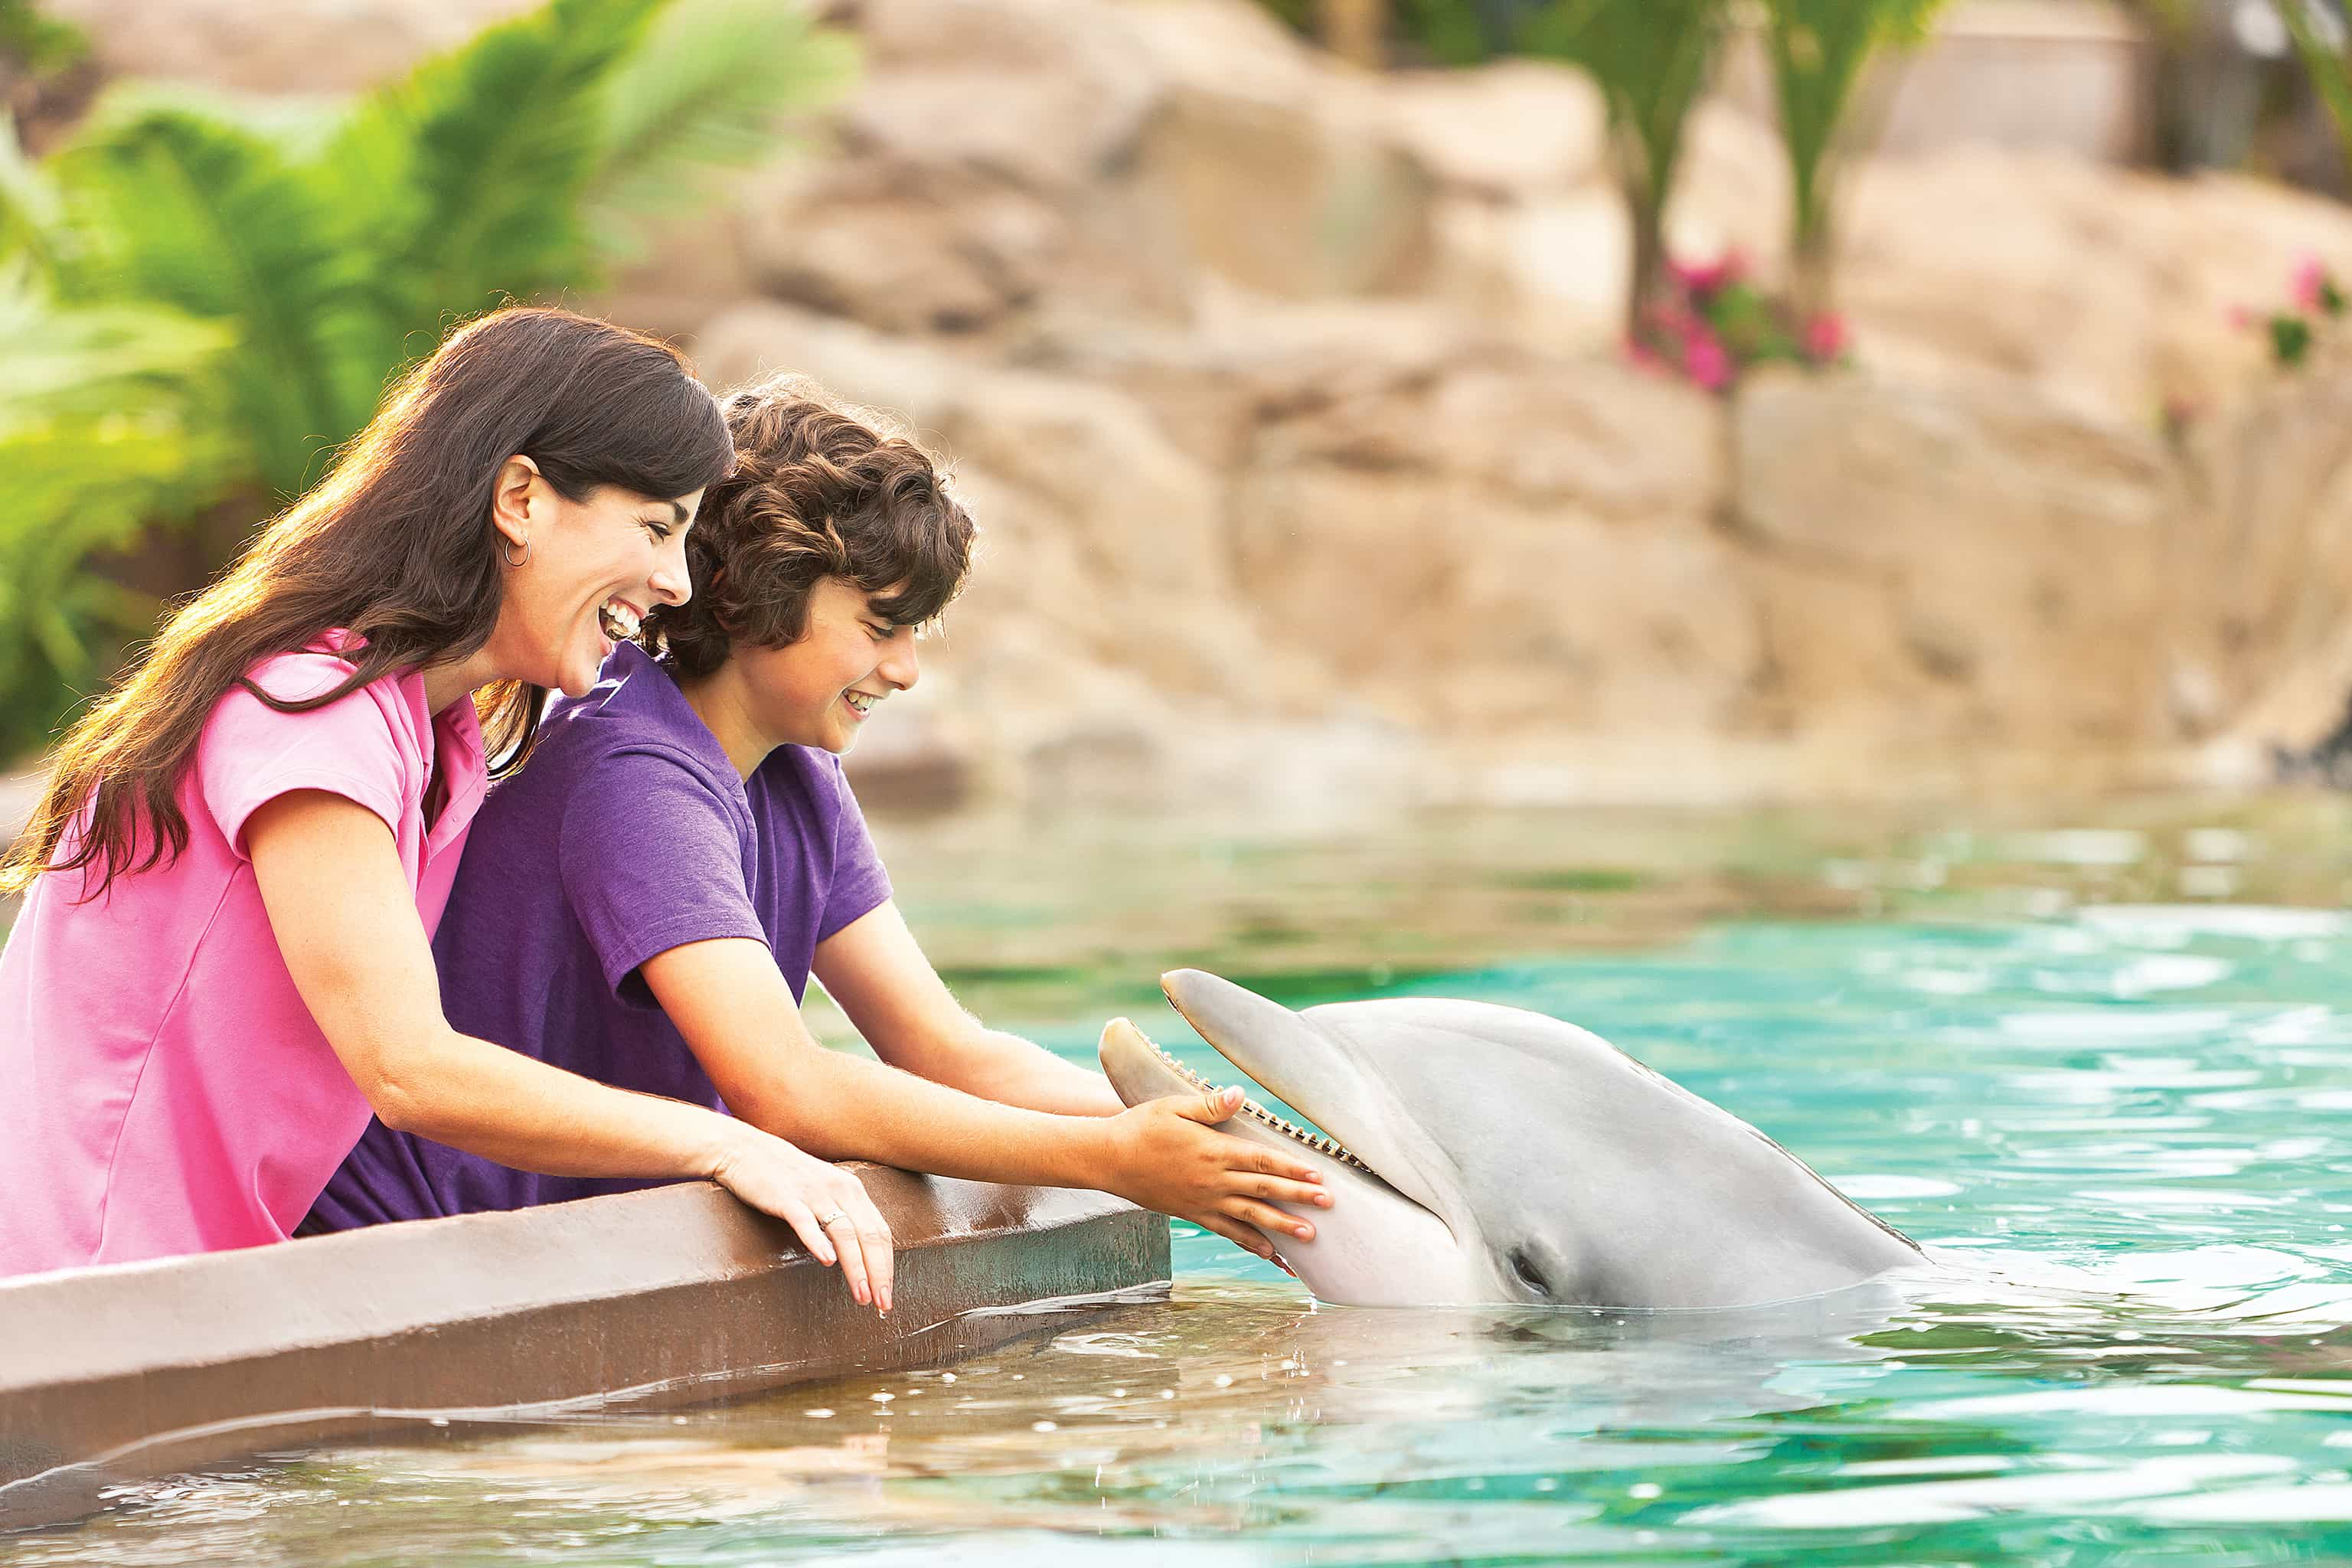 SeaWorld's 2015 Black Friday deals